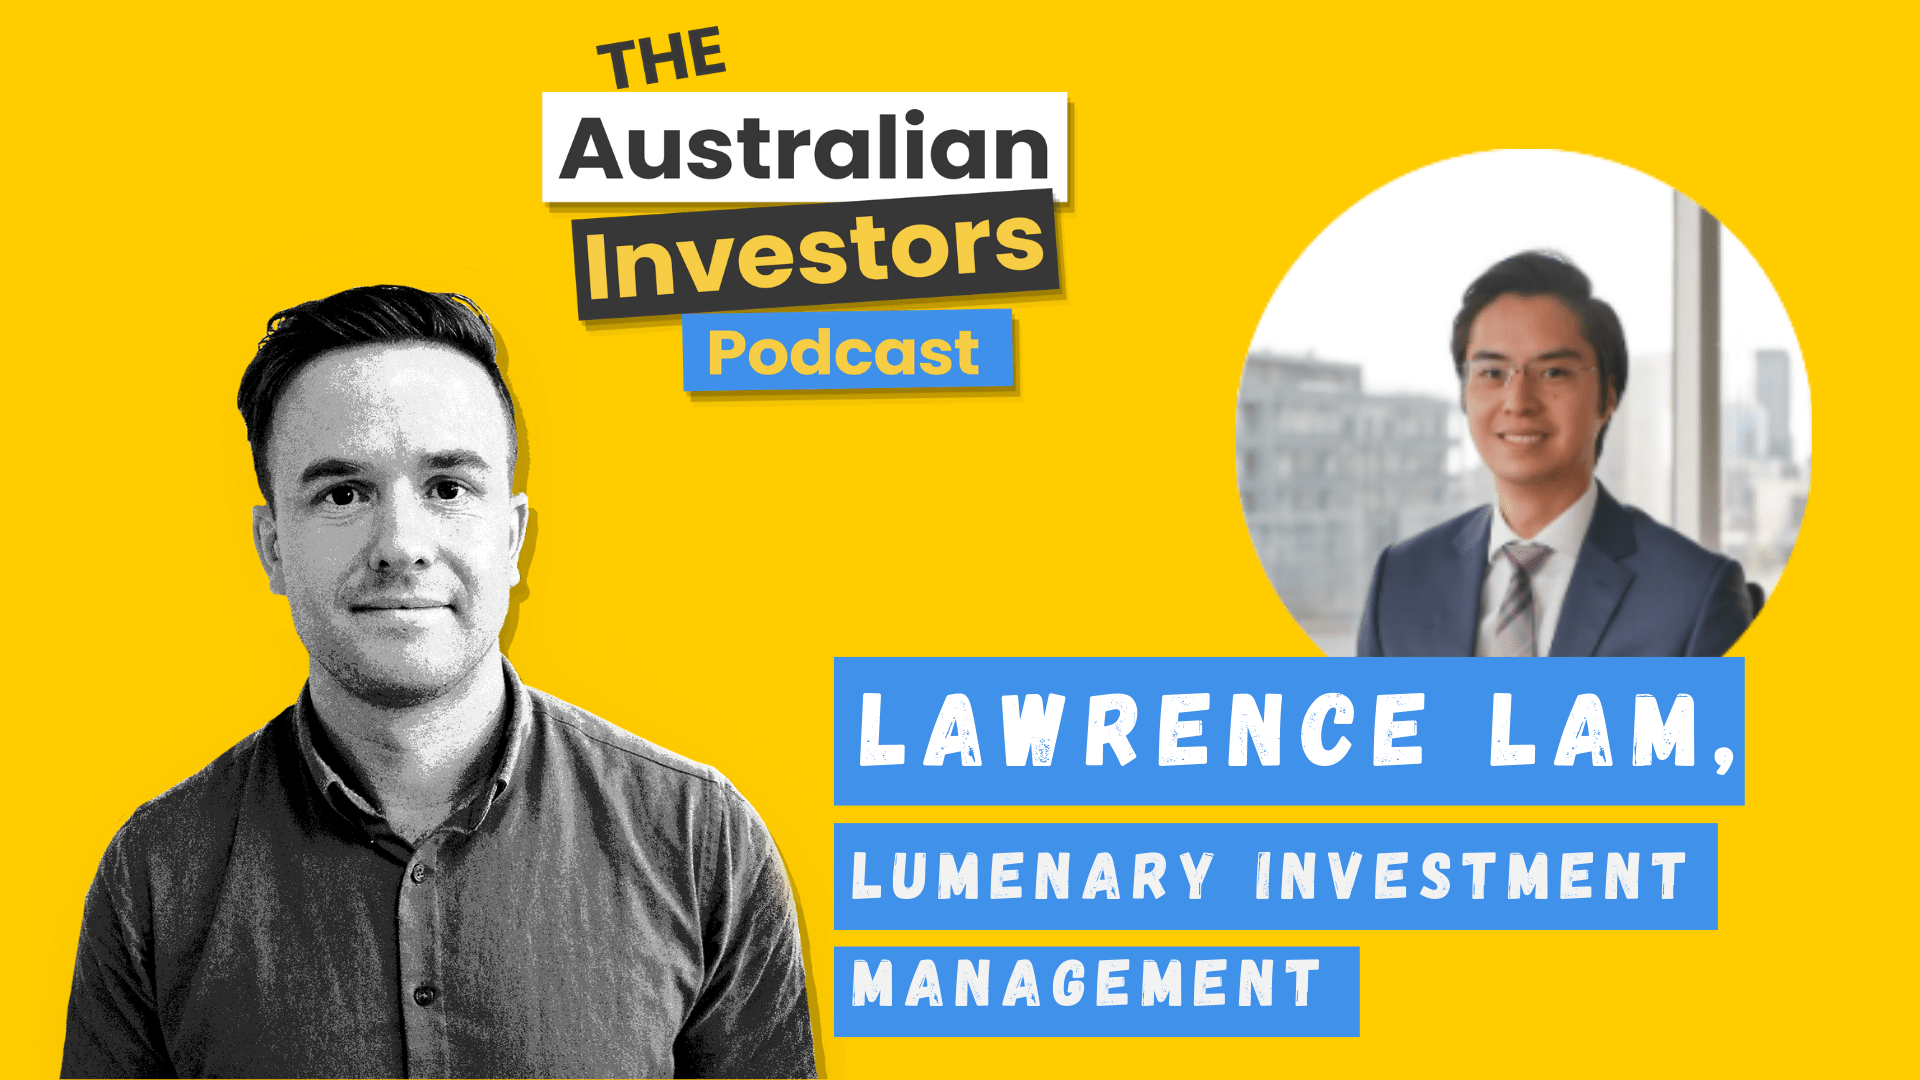 Lawrence Lam on The Australian Investors Podcast thumbnail